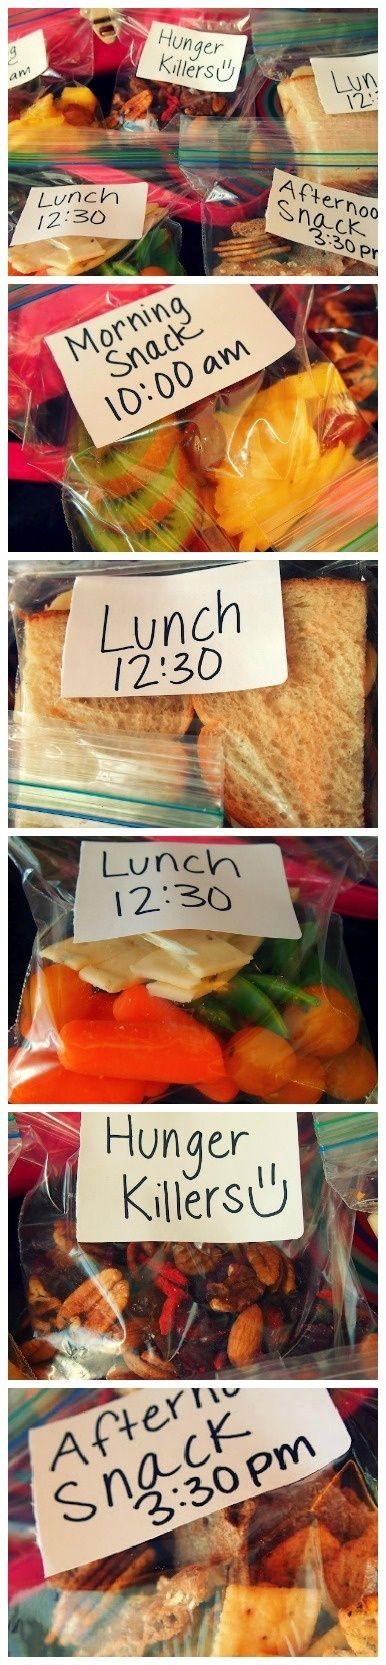 Mapping out what your daily diet entails is the best way to manage how much you eat/what you eat